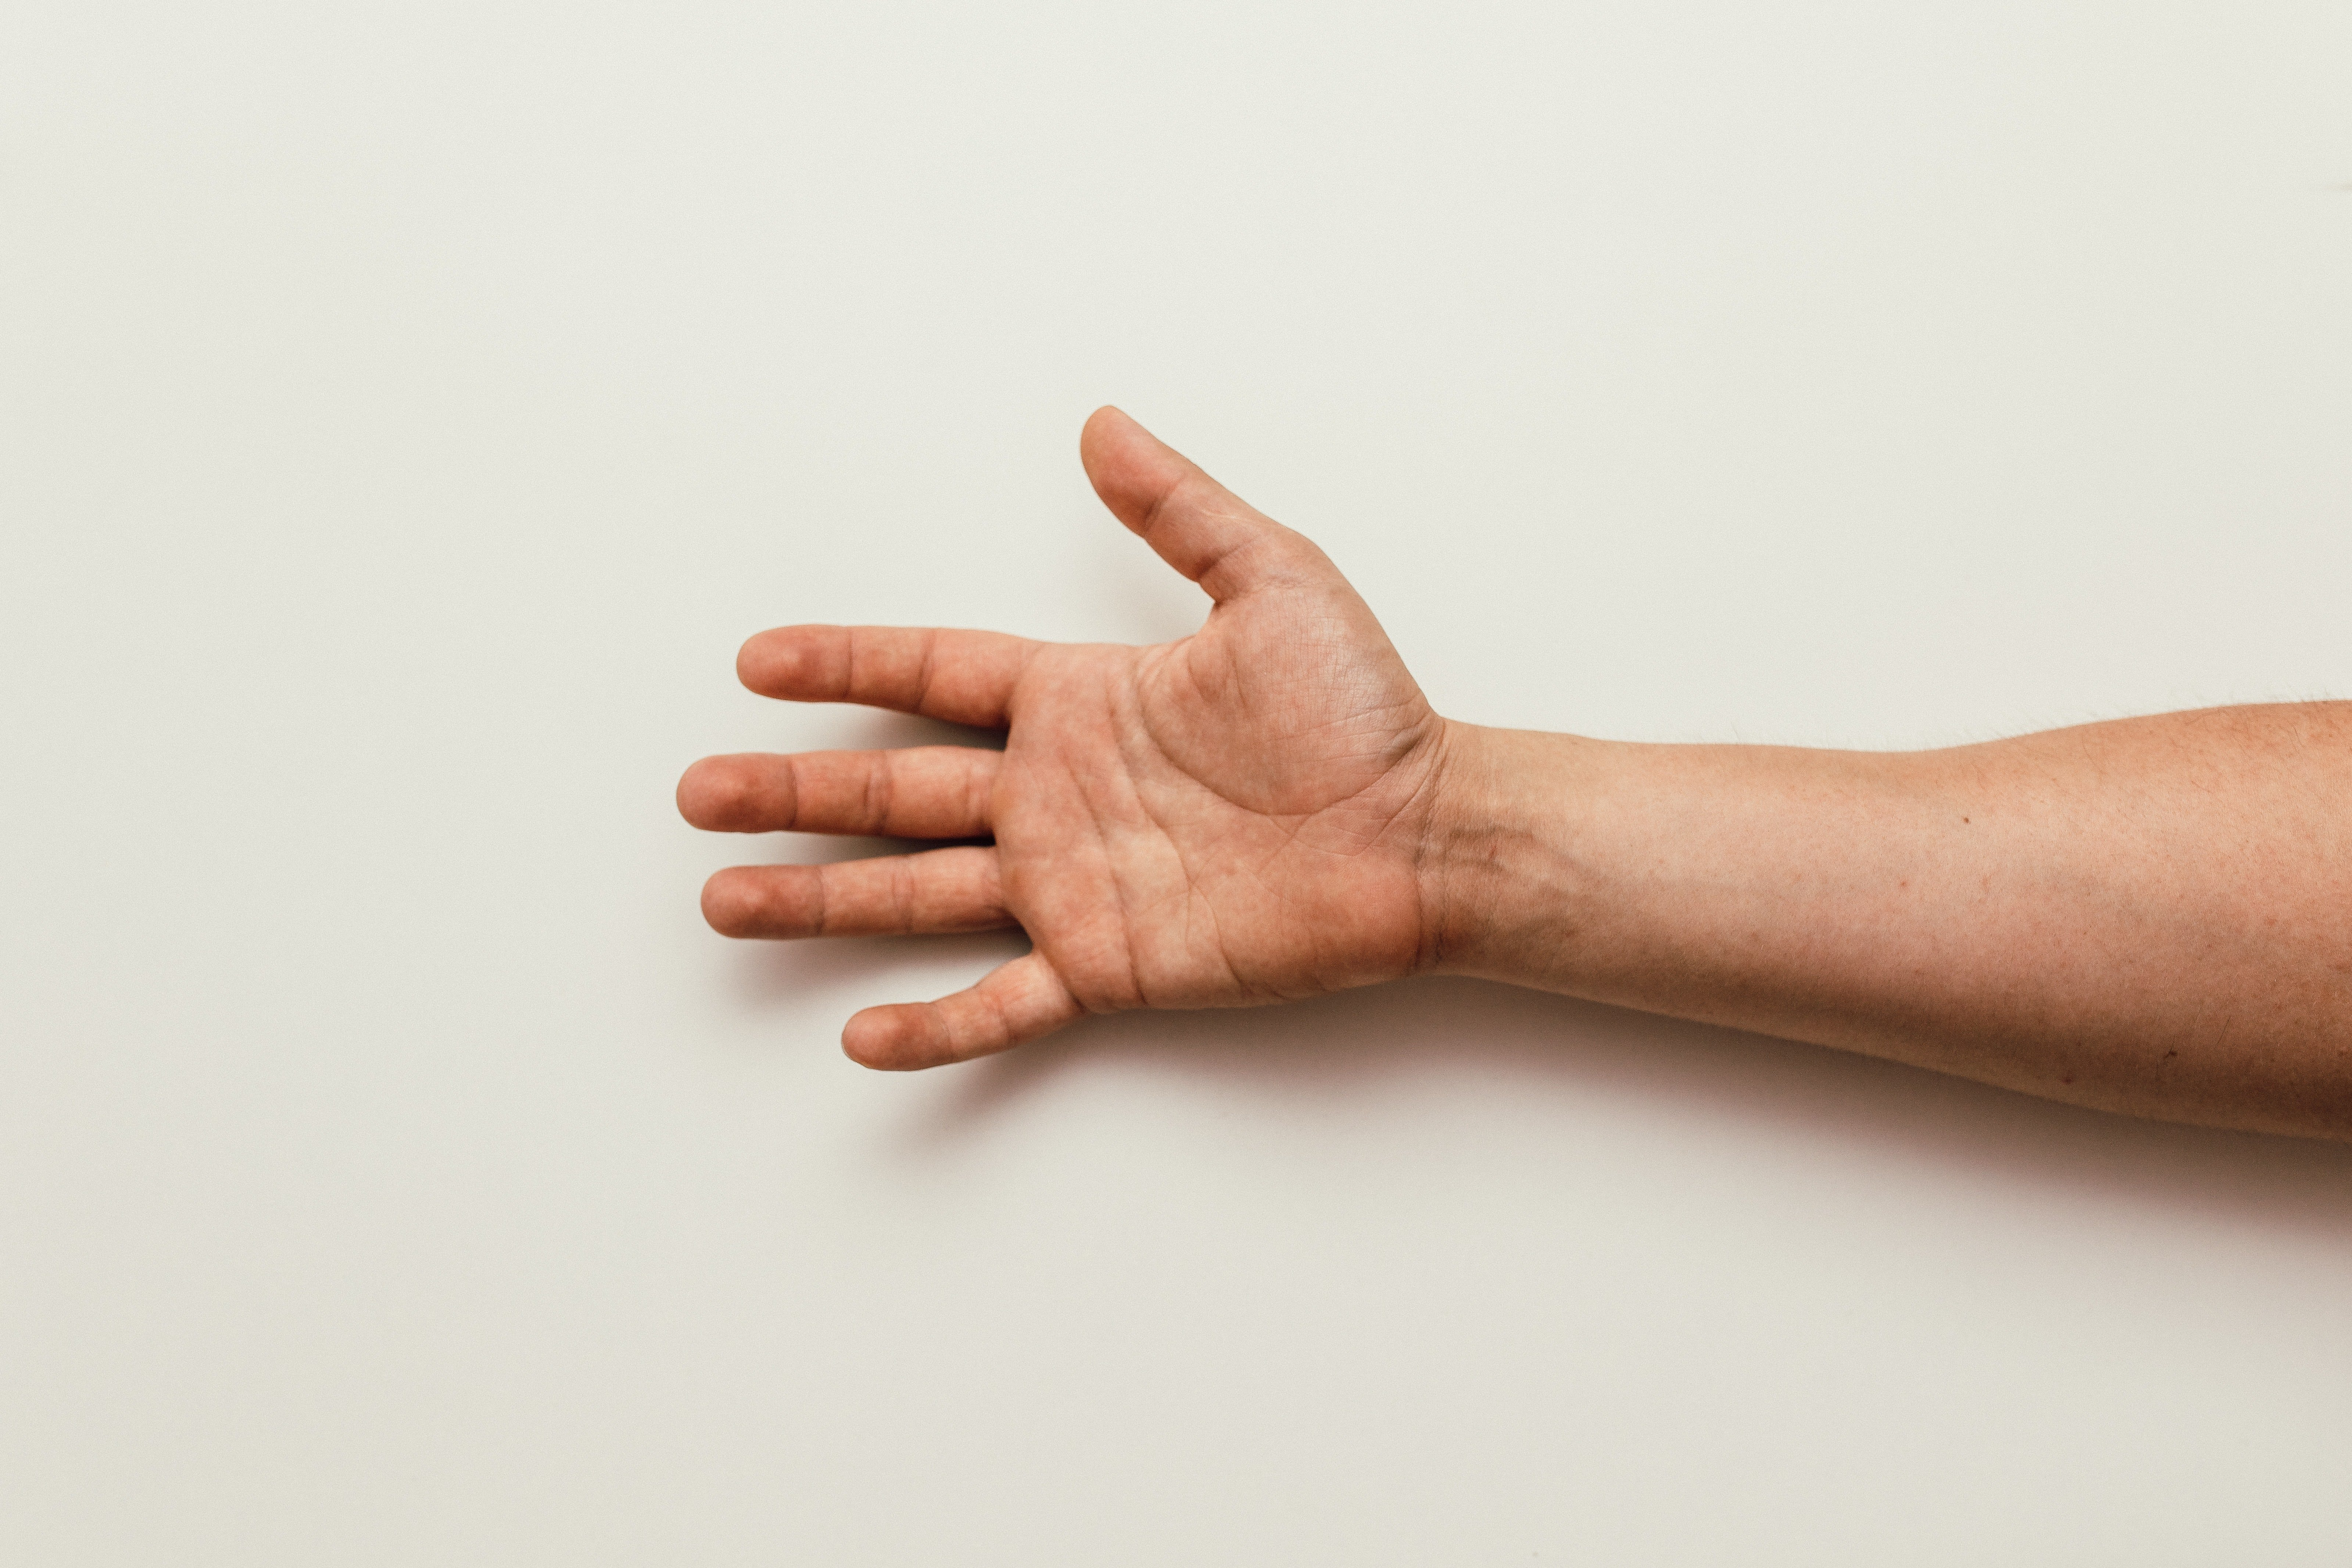 arm-fingers-hand-1257770